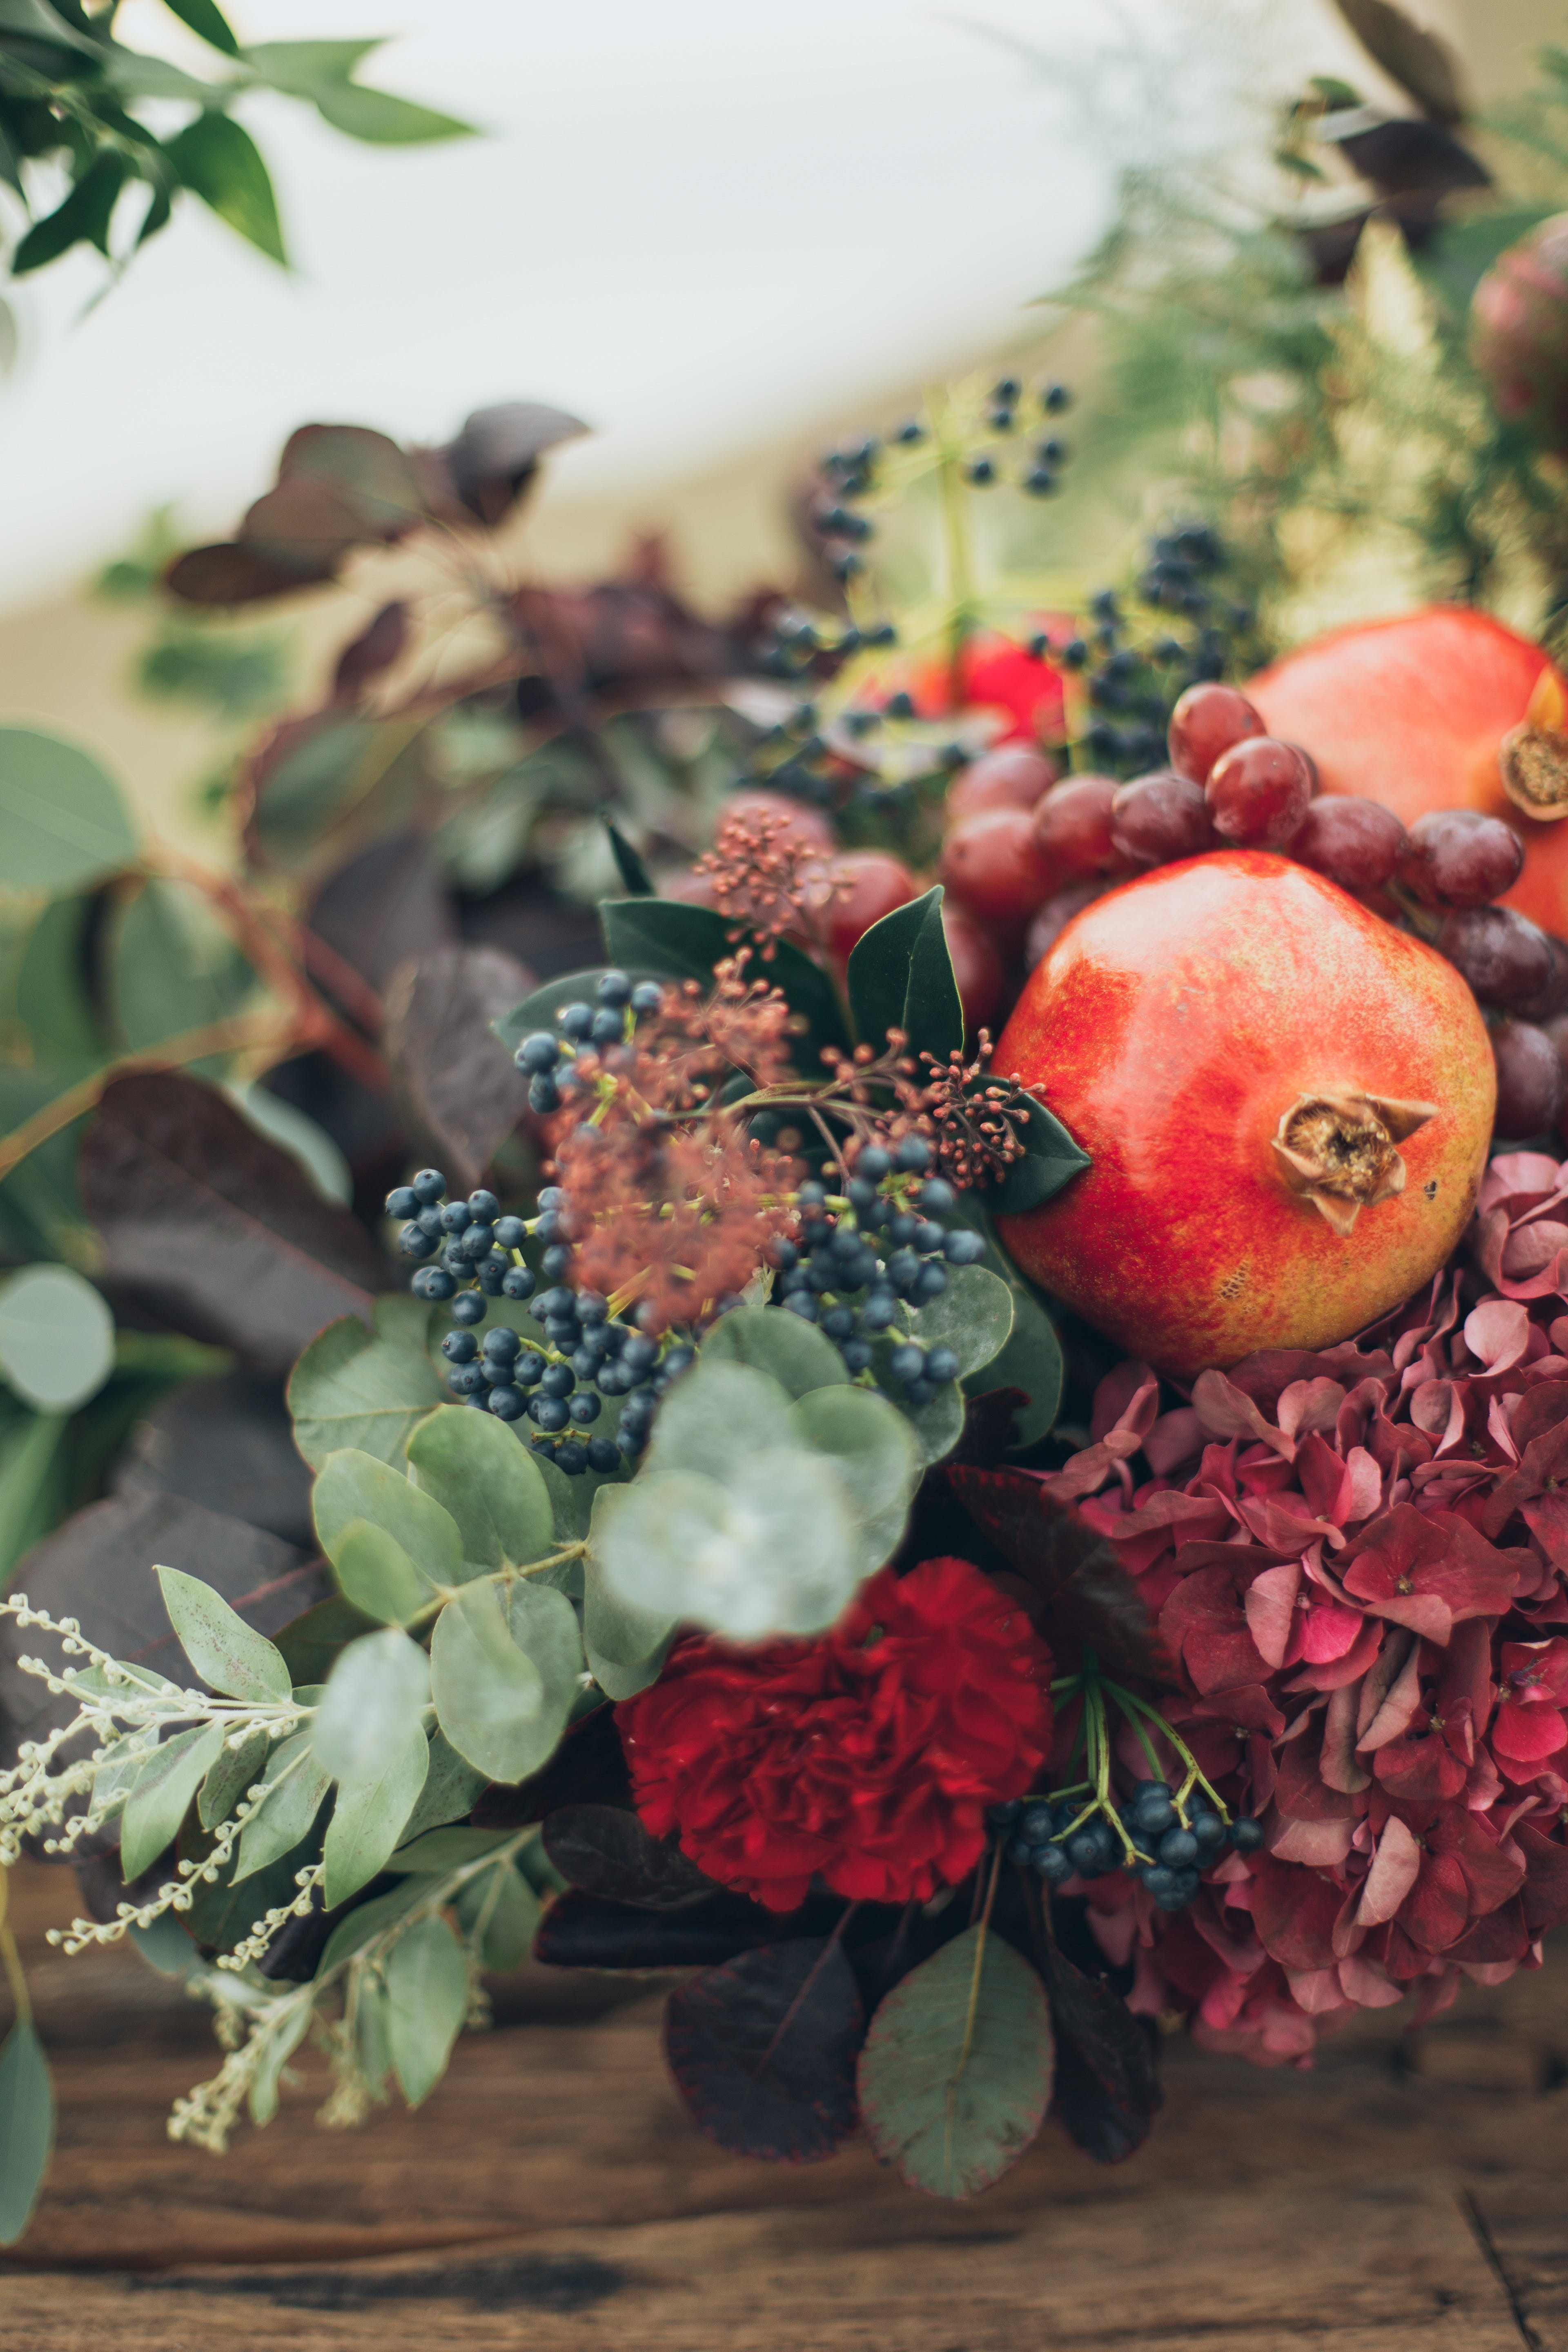 Flowers and Fruits on Wooden Surface